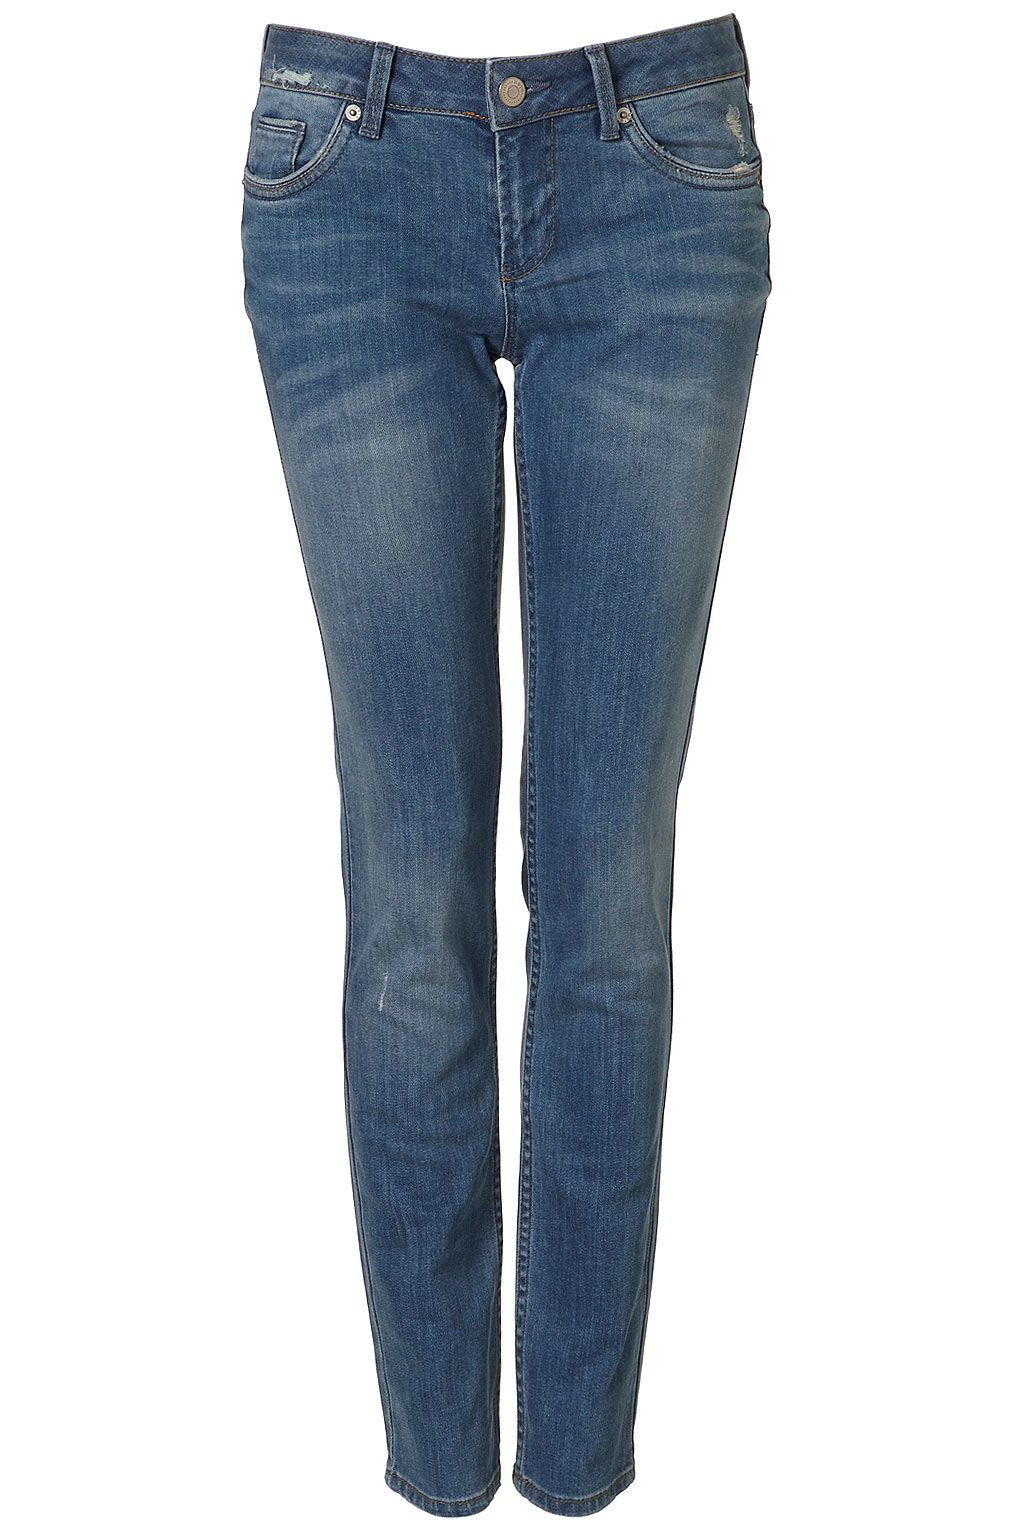 Denim is always essential. Throw these on for the plane ride for starters, and if all else fails, you'll wear them again and again on your trip; just change up your accessories.  Topshop Moto Mid Stone Baxter Jeans ($80)